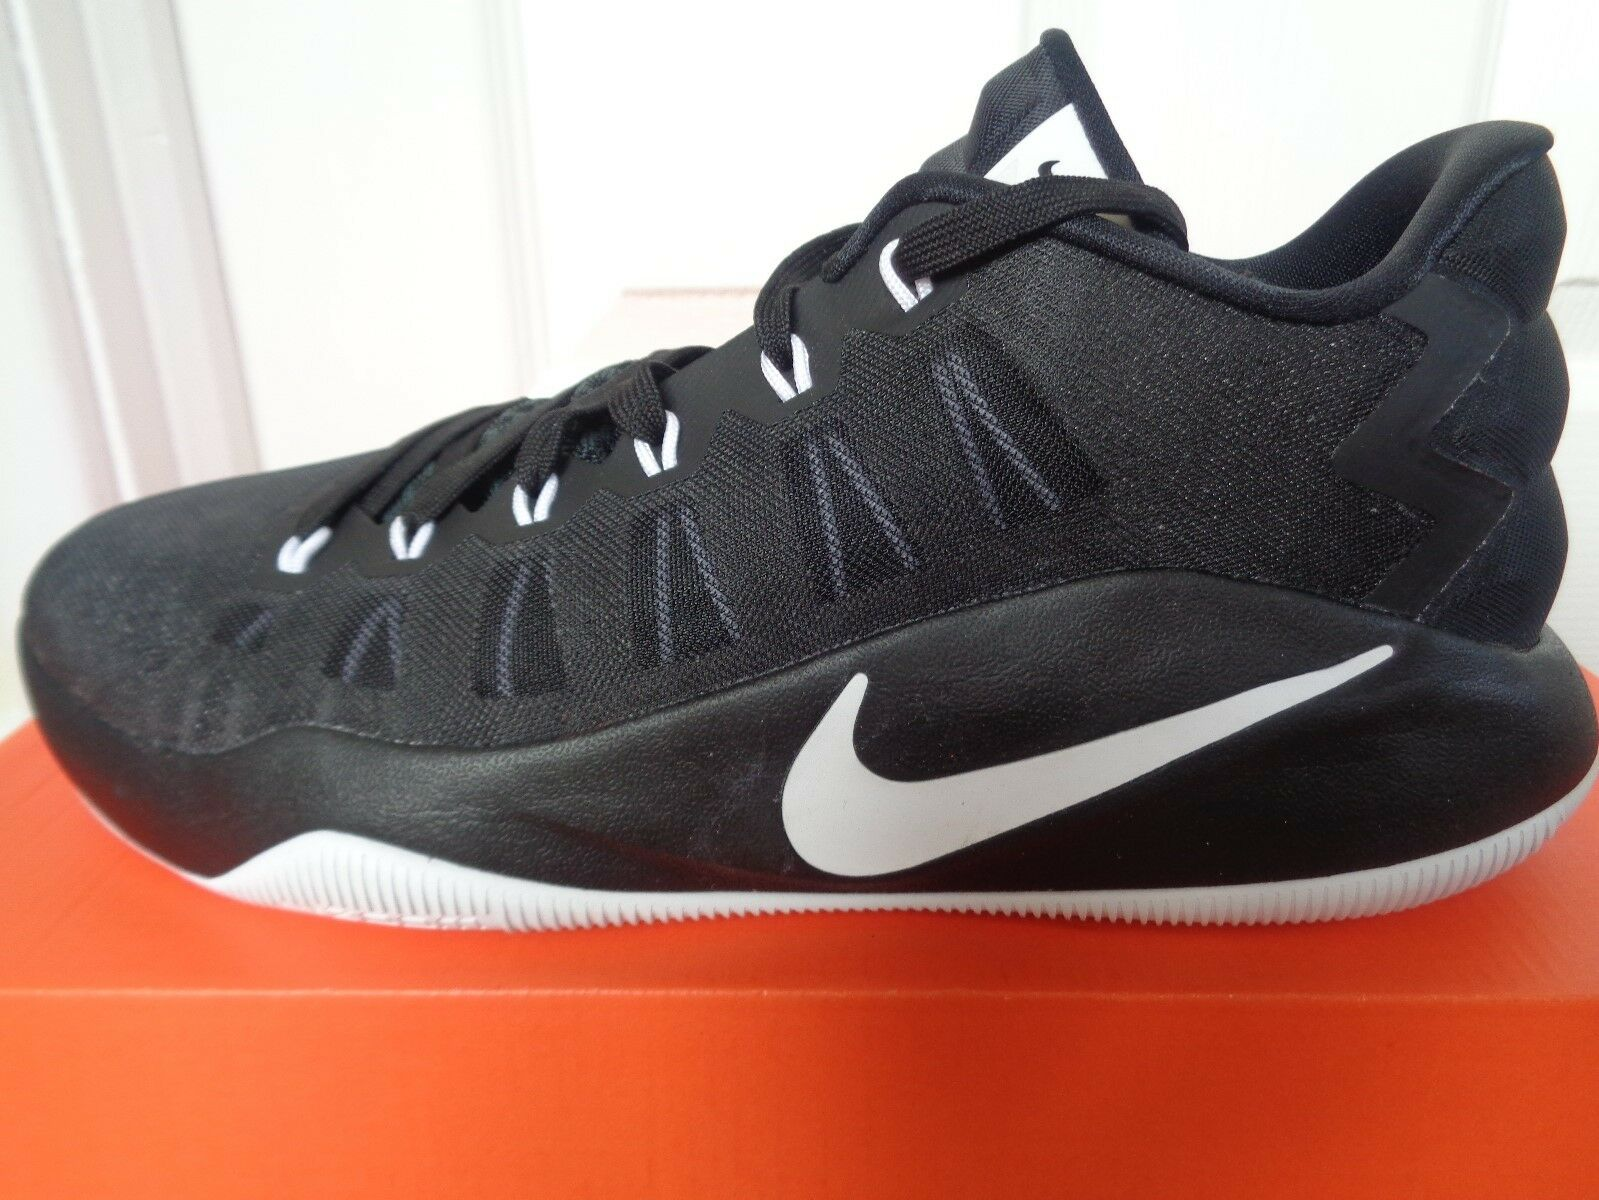 Nike Hyperdunk 2018 Low homme trainers sneakers 844363 001 uk 9 eu 44 us 10 NEW